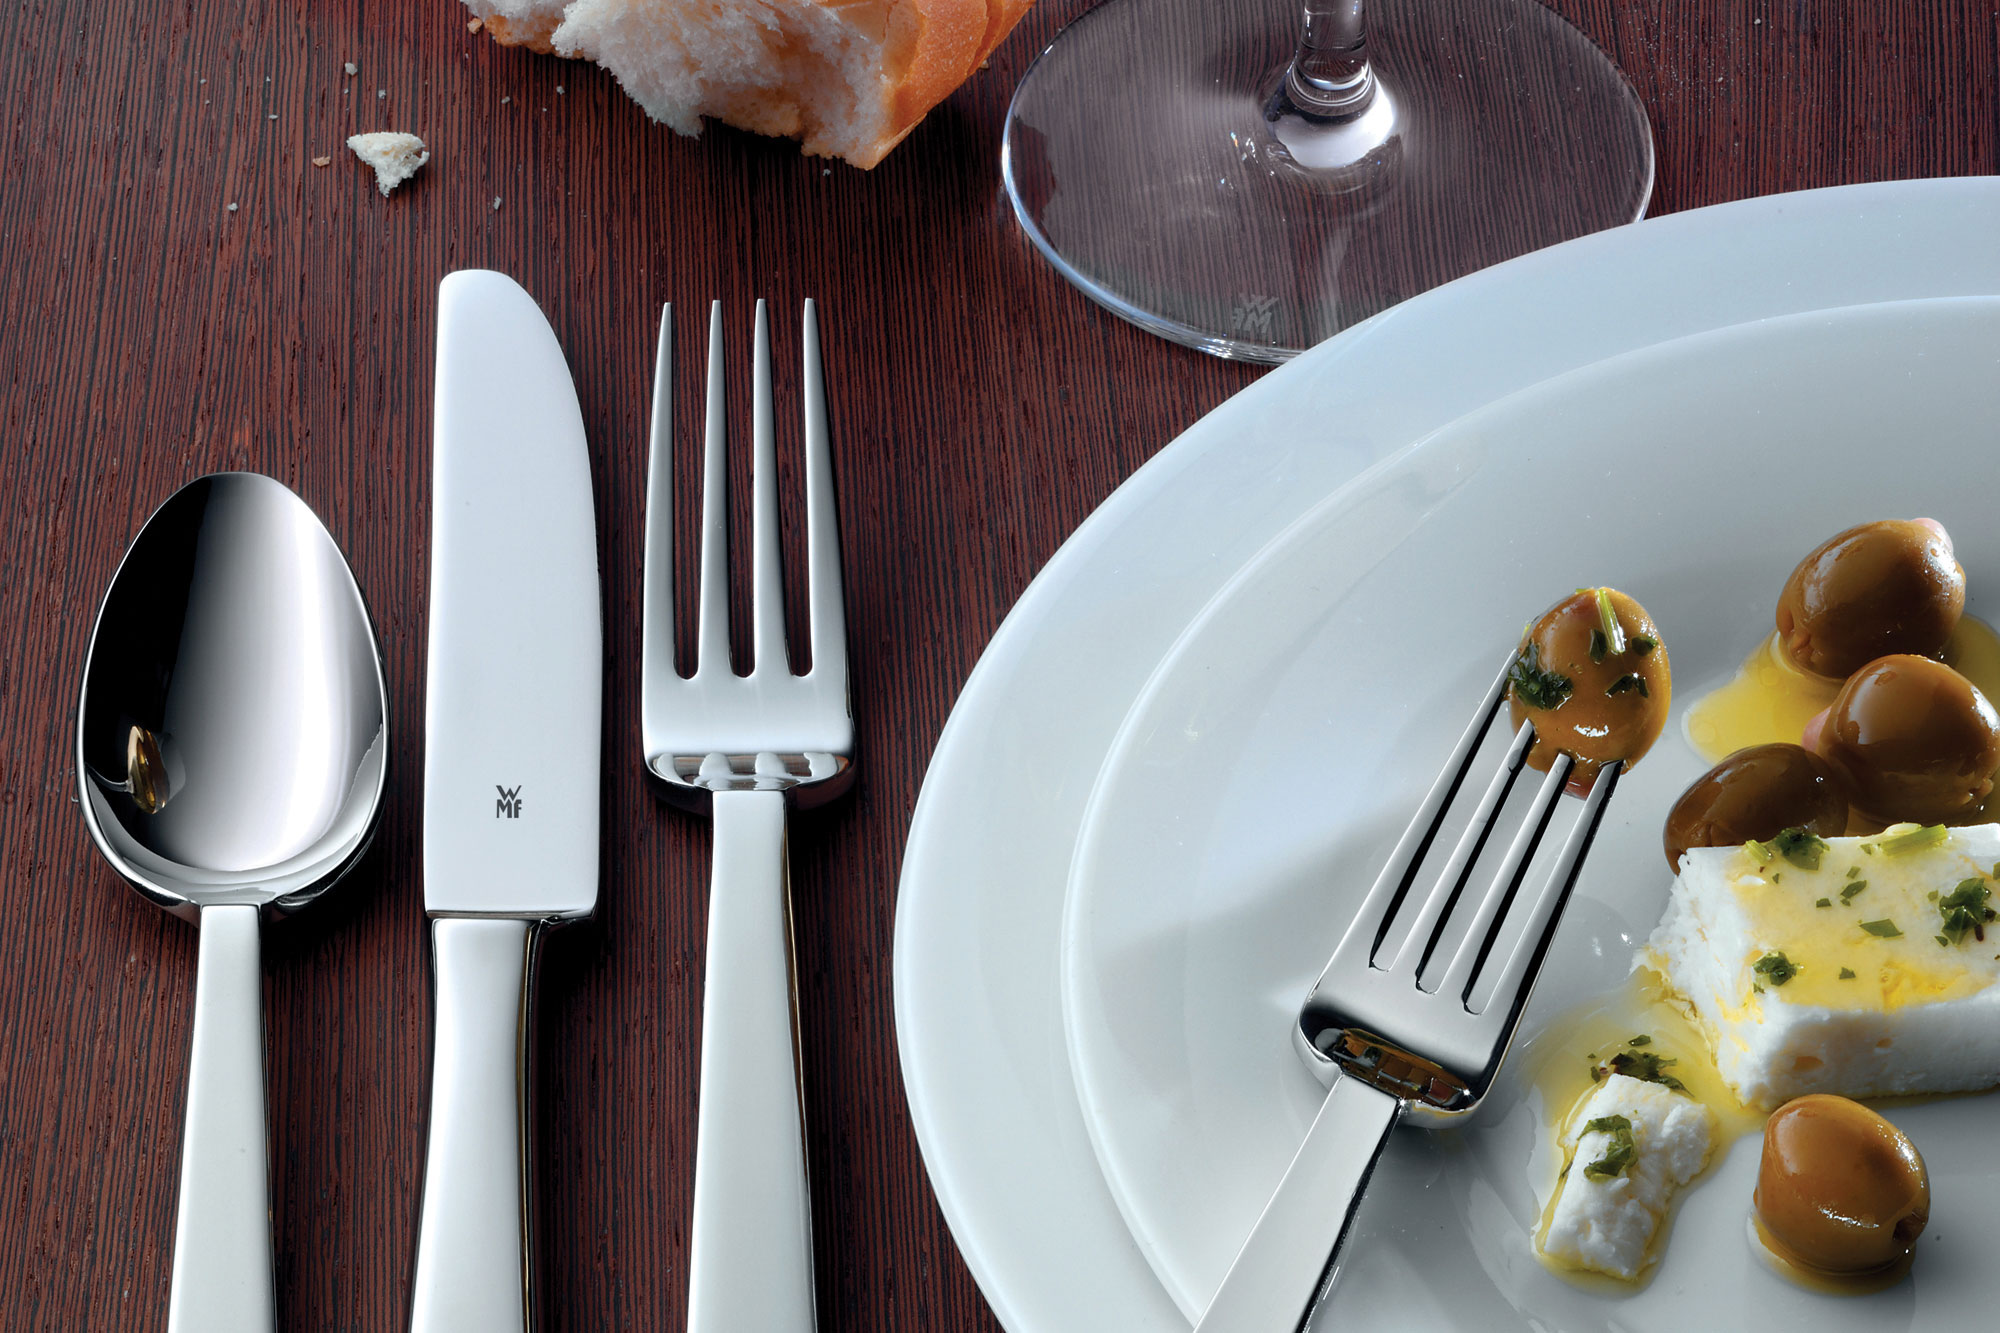 WMF Royal Stainless Steel Flatware Set, 20-piece | Cutlery and More